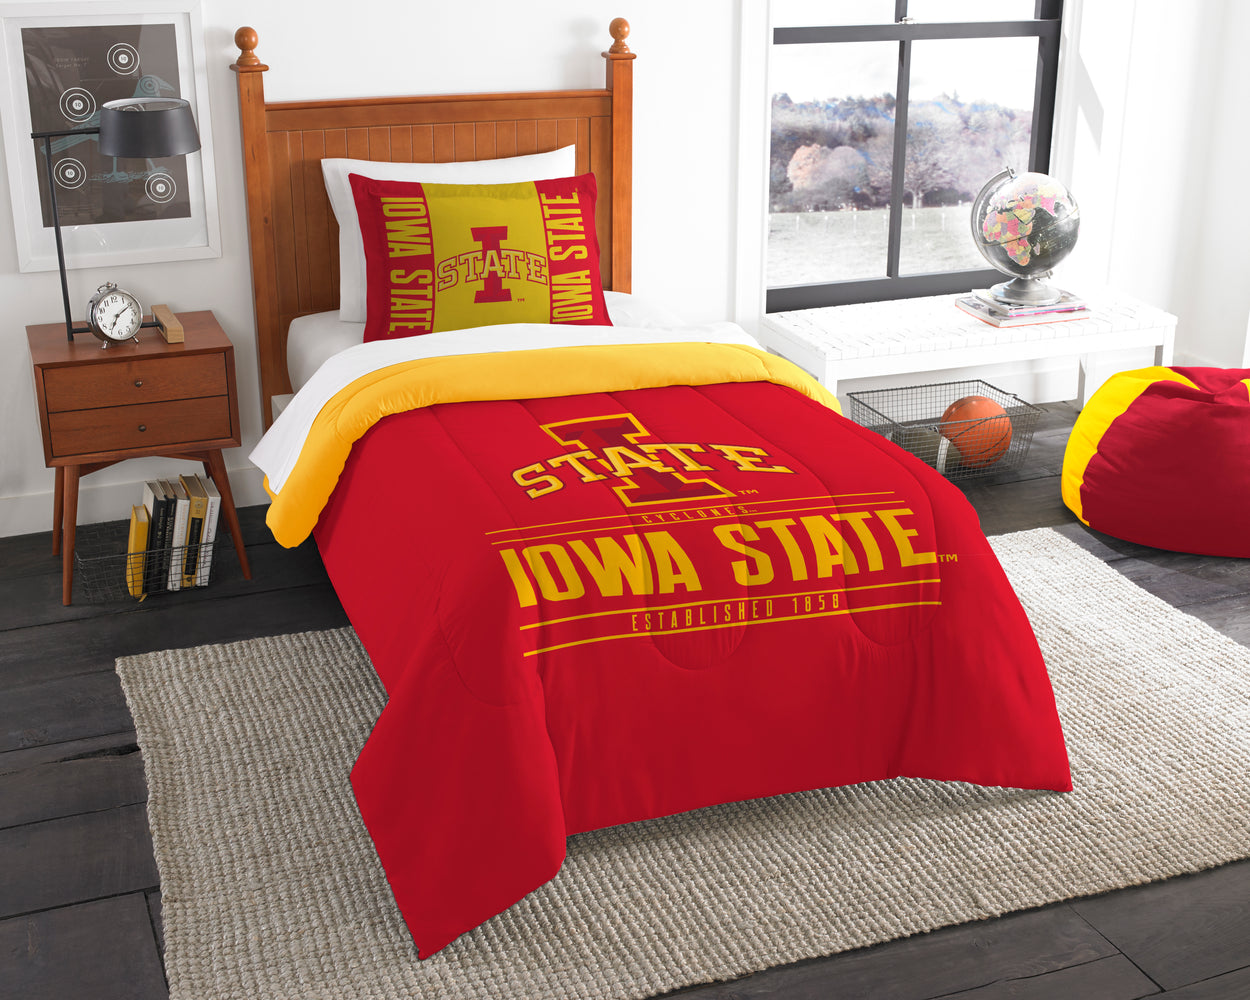 "Iowa State OFFICIAL Collegiate, Bedding, """"Modern Take"""" Twin Printed Comforter (64""""x 86"""") & 1 Sham (24""""x 30"""") Set  by The Northwest Company"